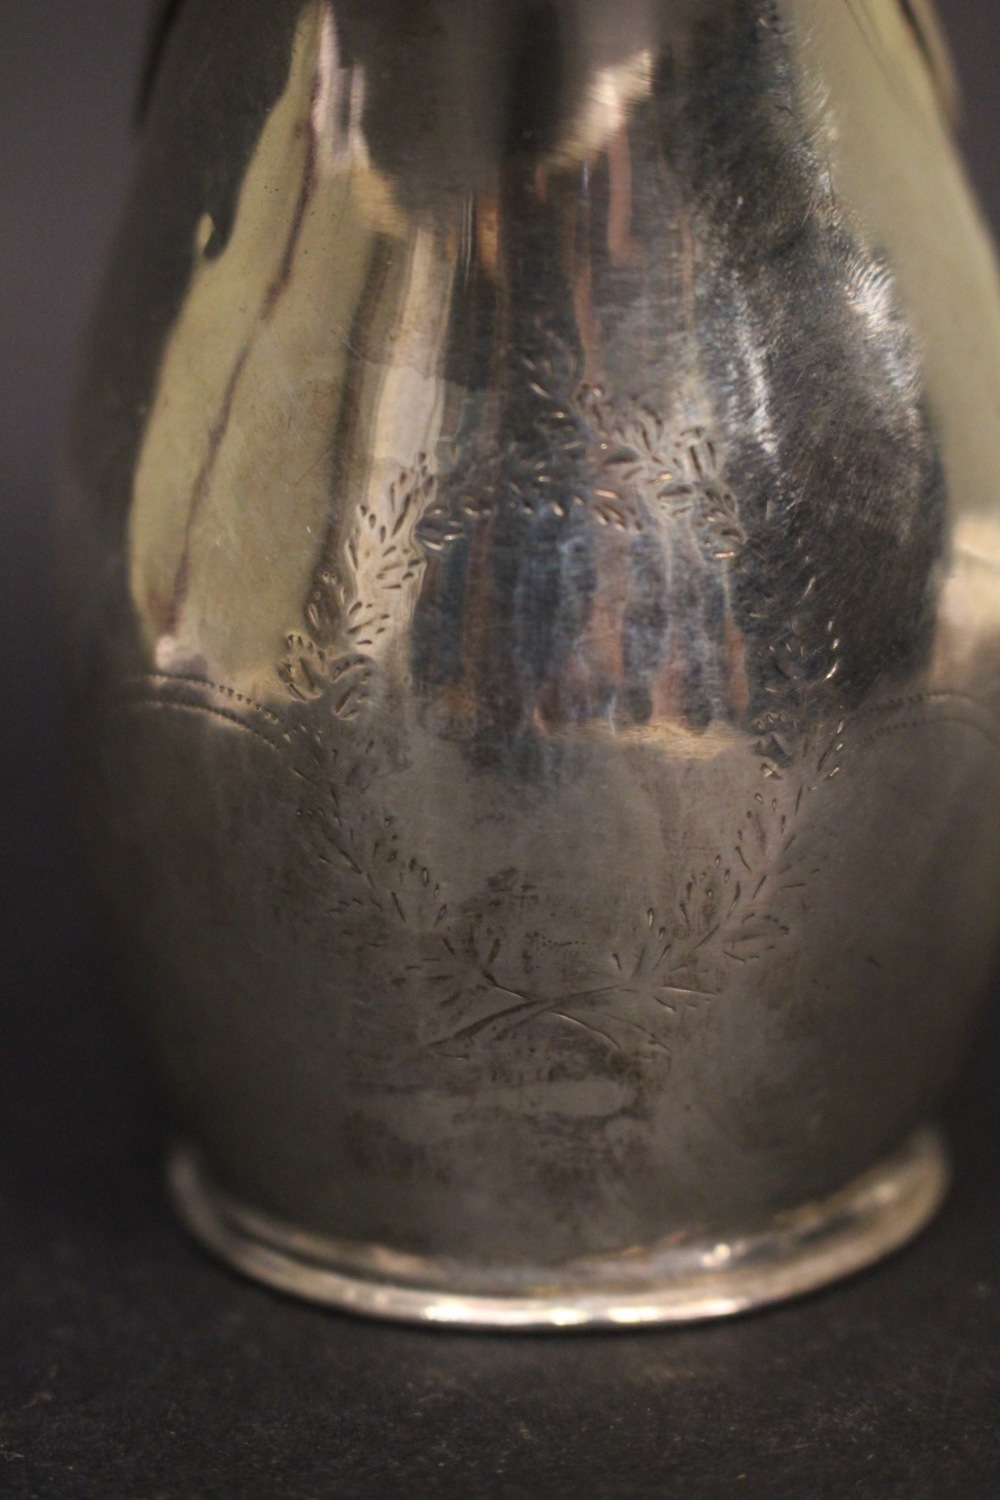 Lot 15 - A VERY EARLY 19TH CENTURY SILVER JUG Sheffield ware, date letter crown over M for 1802/03, with lion